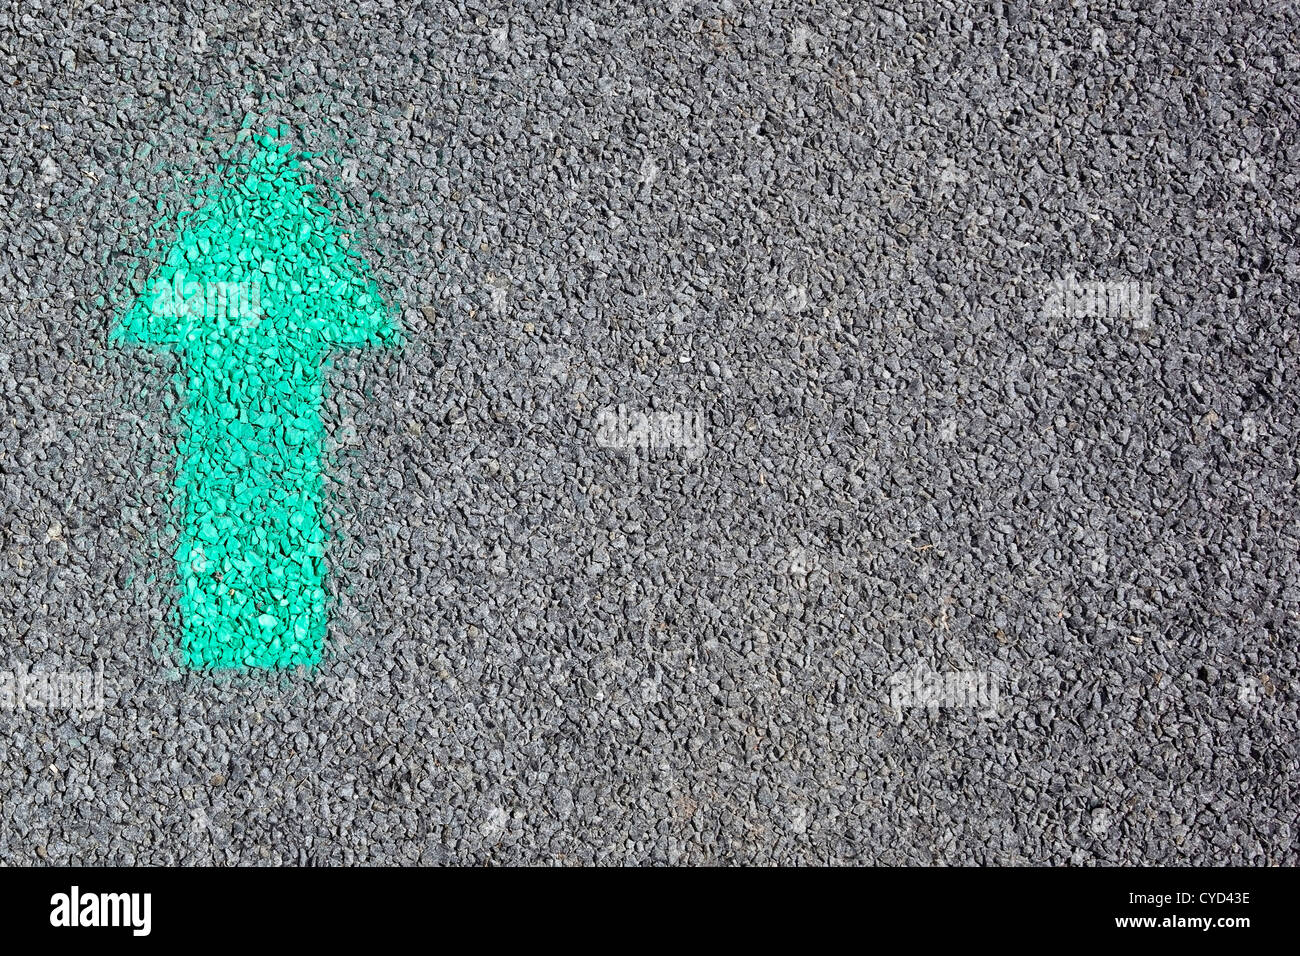 Background image of a green arrow spray painted onto a tarmac road surface - Stock Image